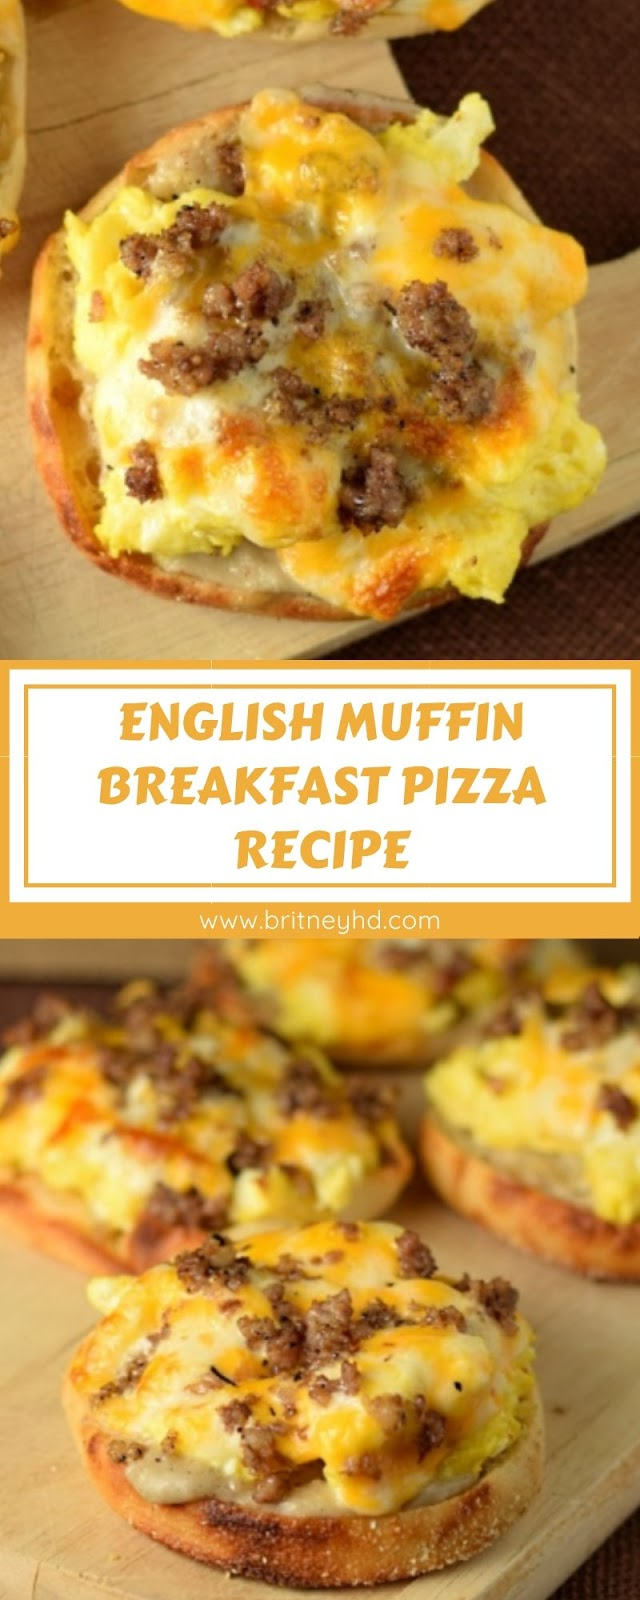 ENGLISH MUFFIN BREAKFAST PIZZA RECIPE